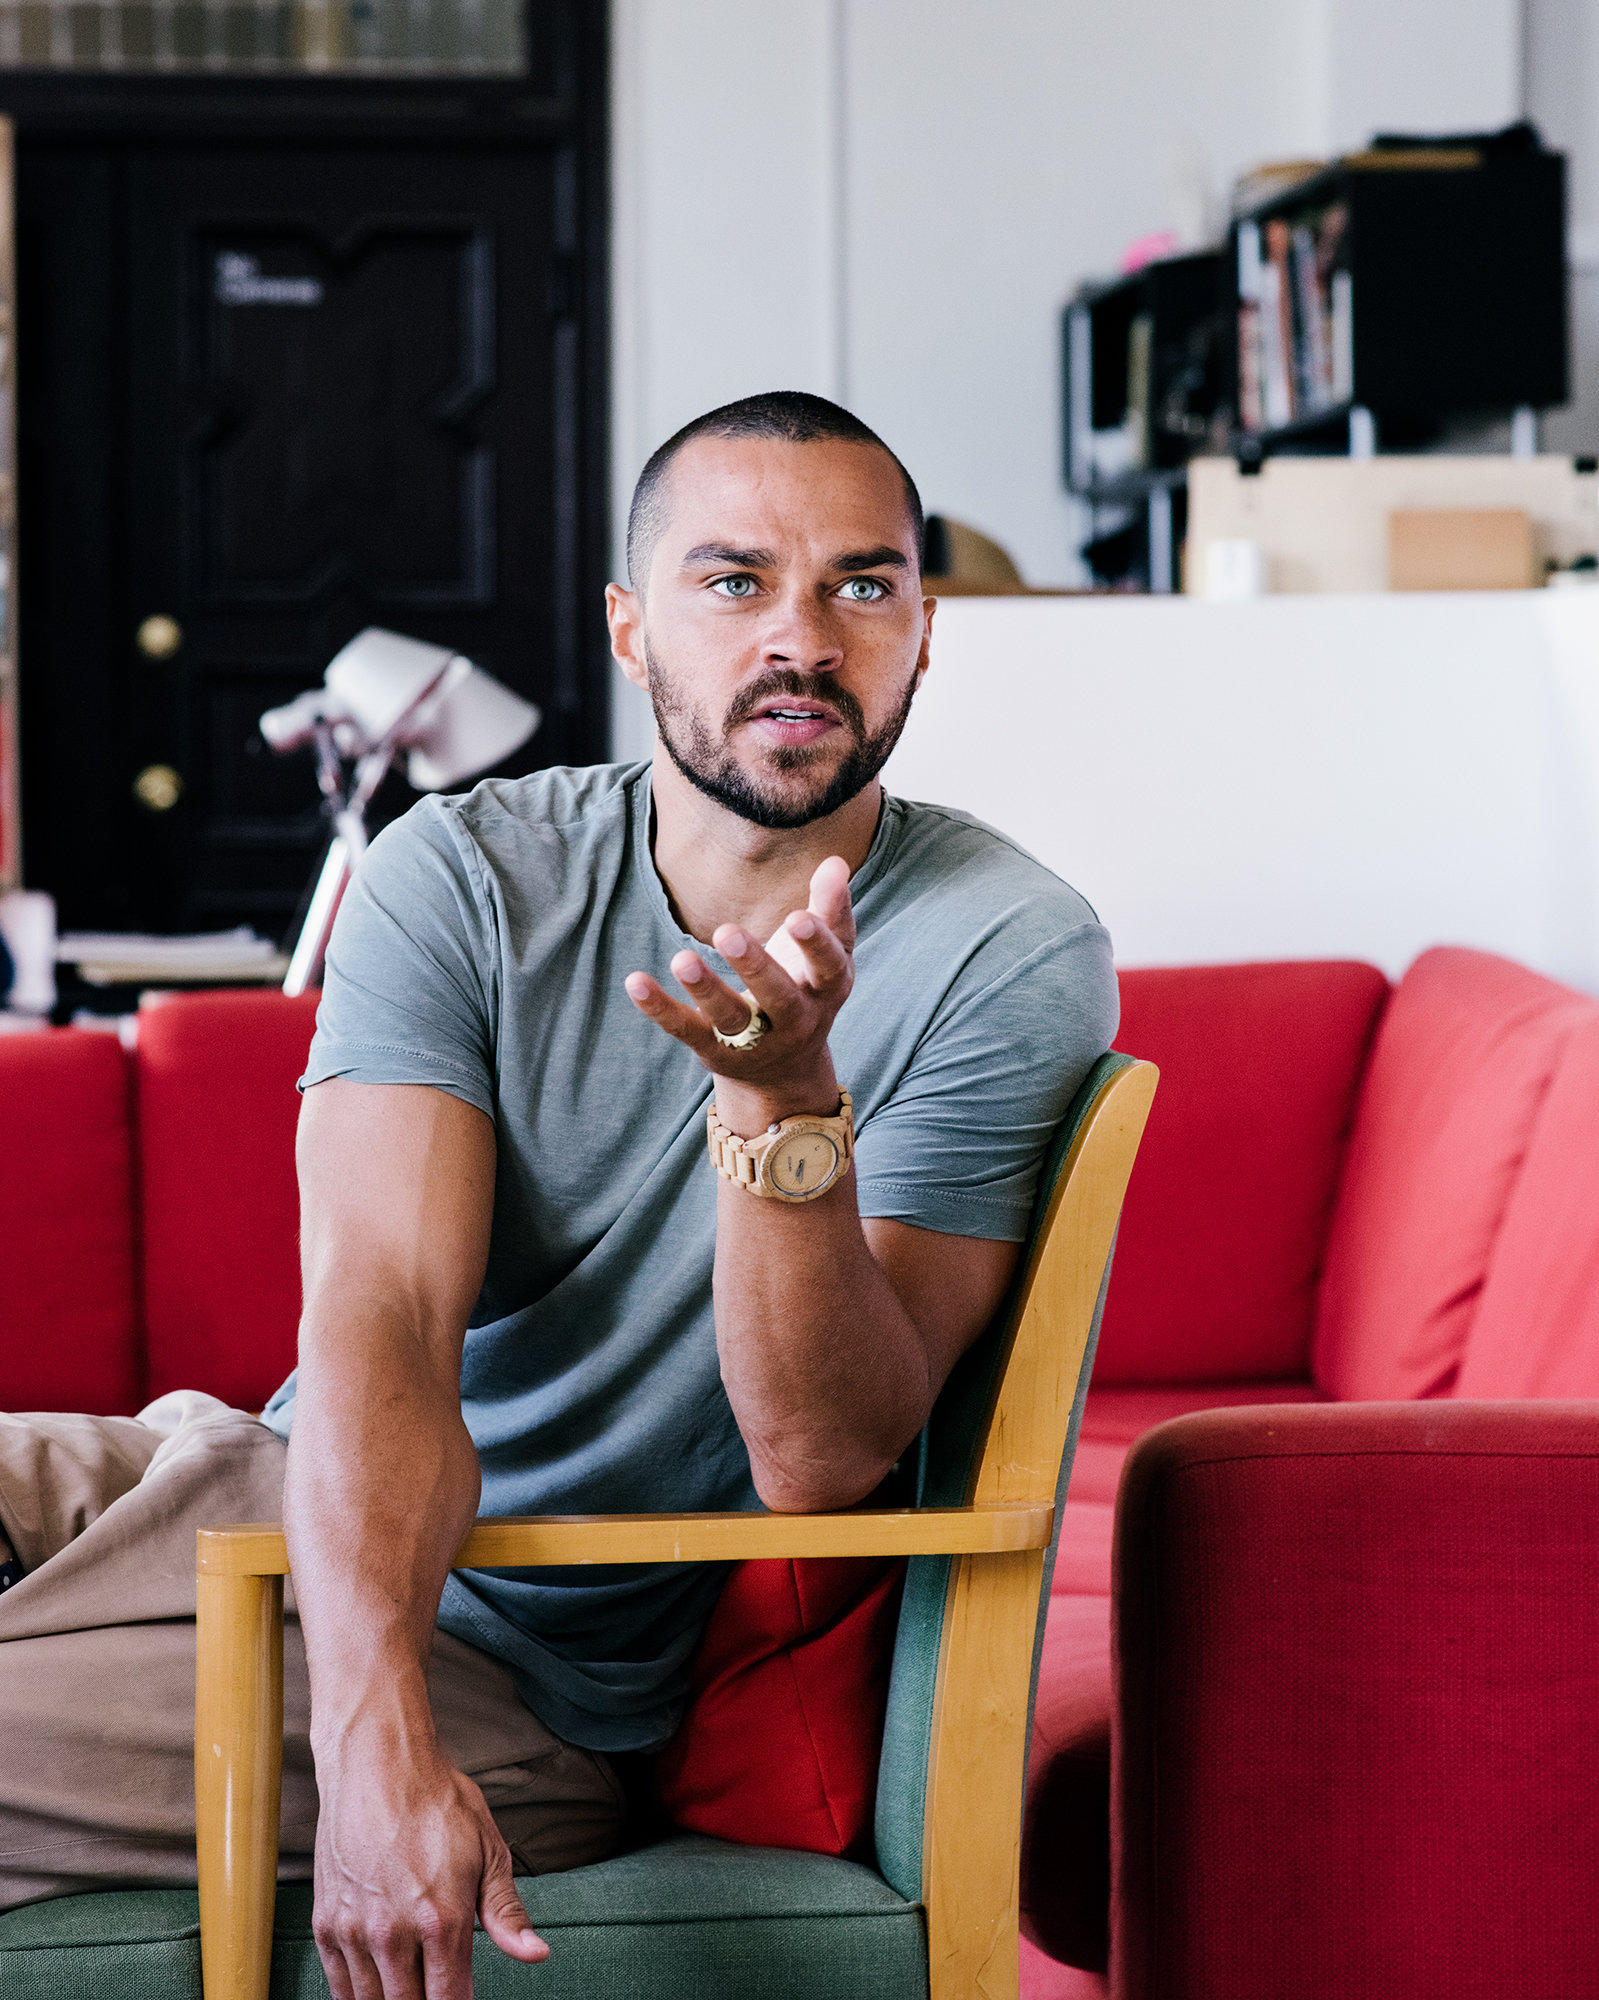 JohnFPeters_JesseWilliams_2.jpg